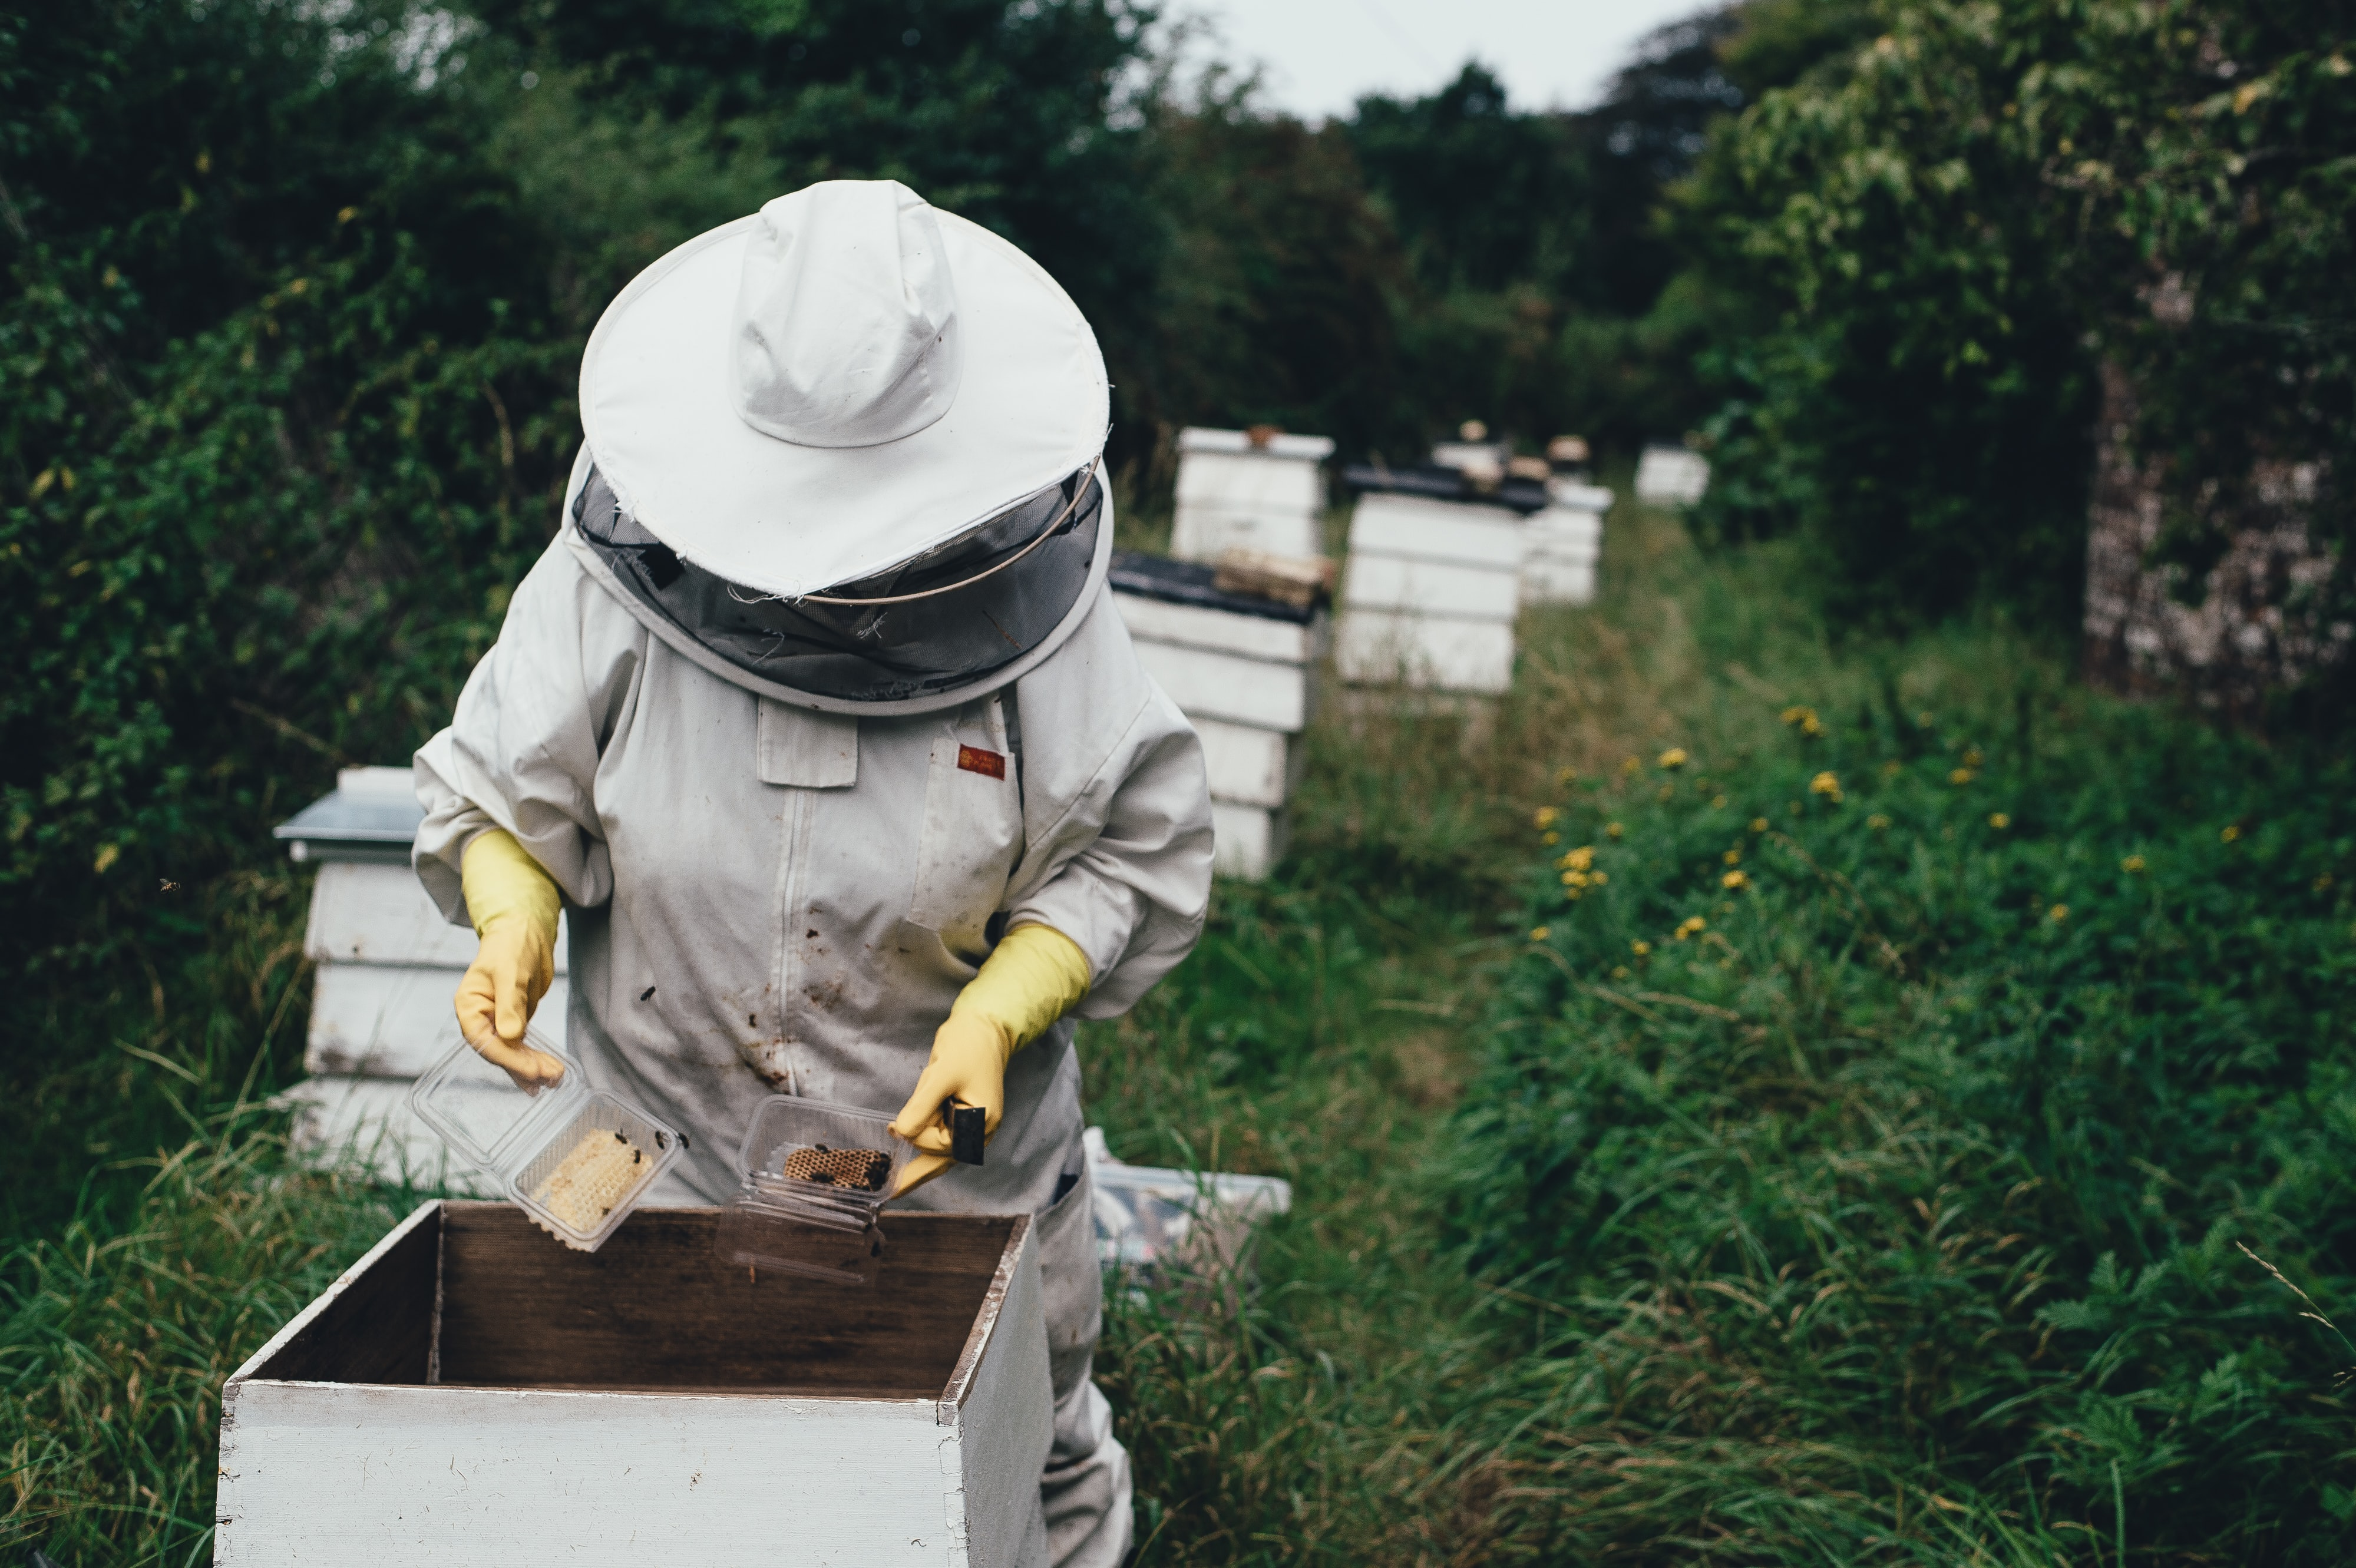 A beekeeper harvesting honey out of a beehive in Deans Court